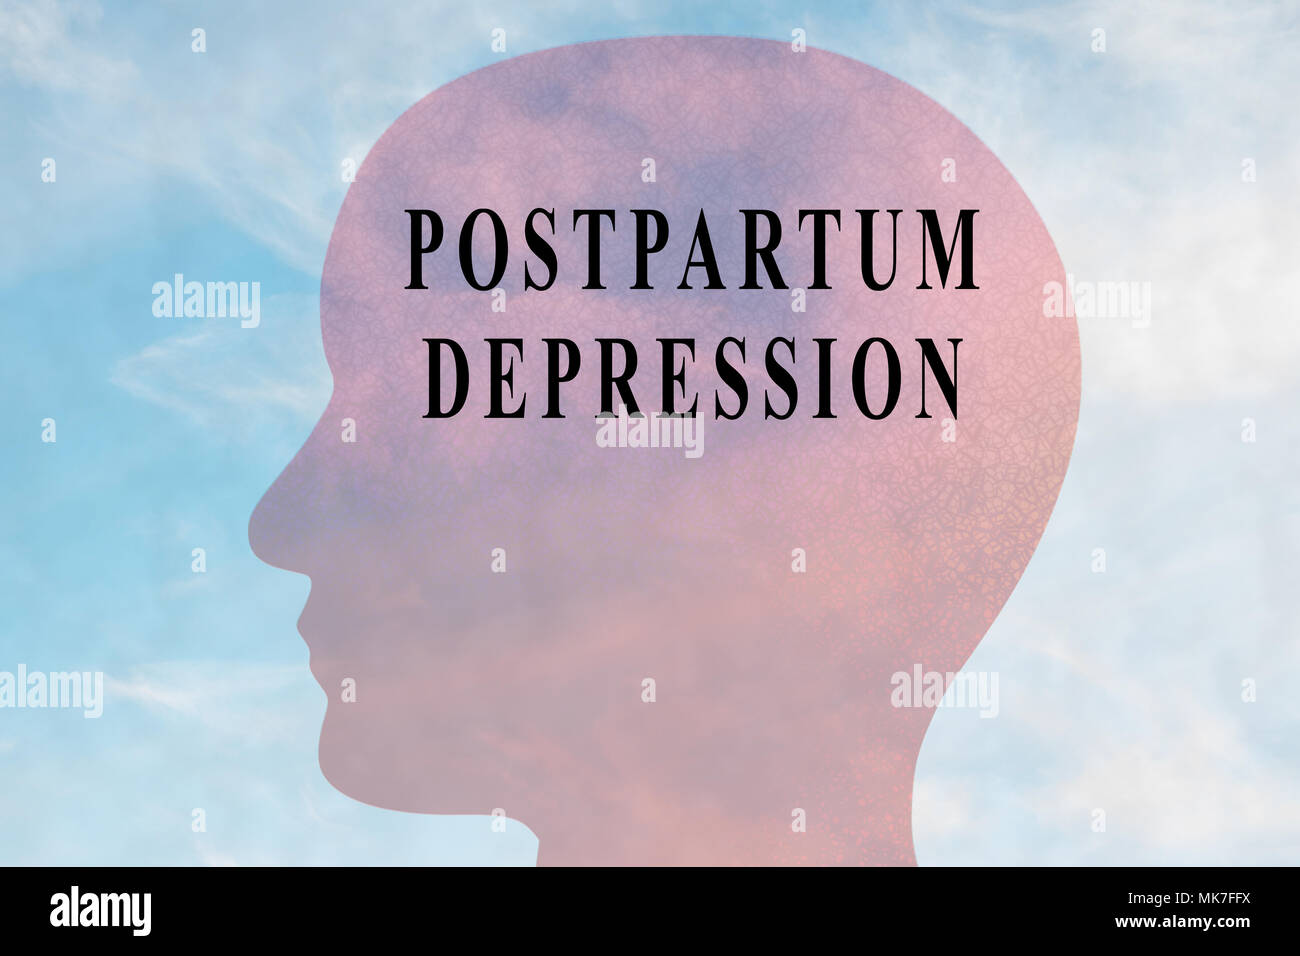 Render illustration of POSTPARTUM DEPRESSION title on head silhouette, with cloudy sky as a background. - Stock Image